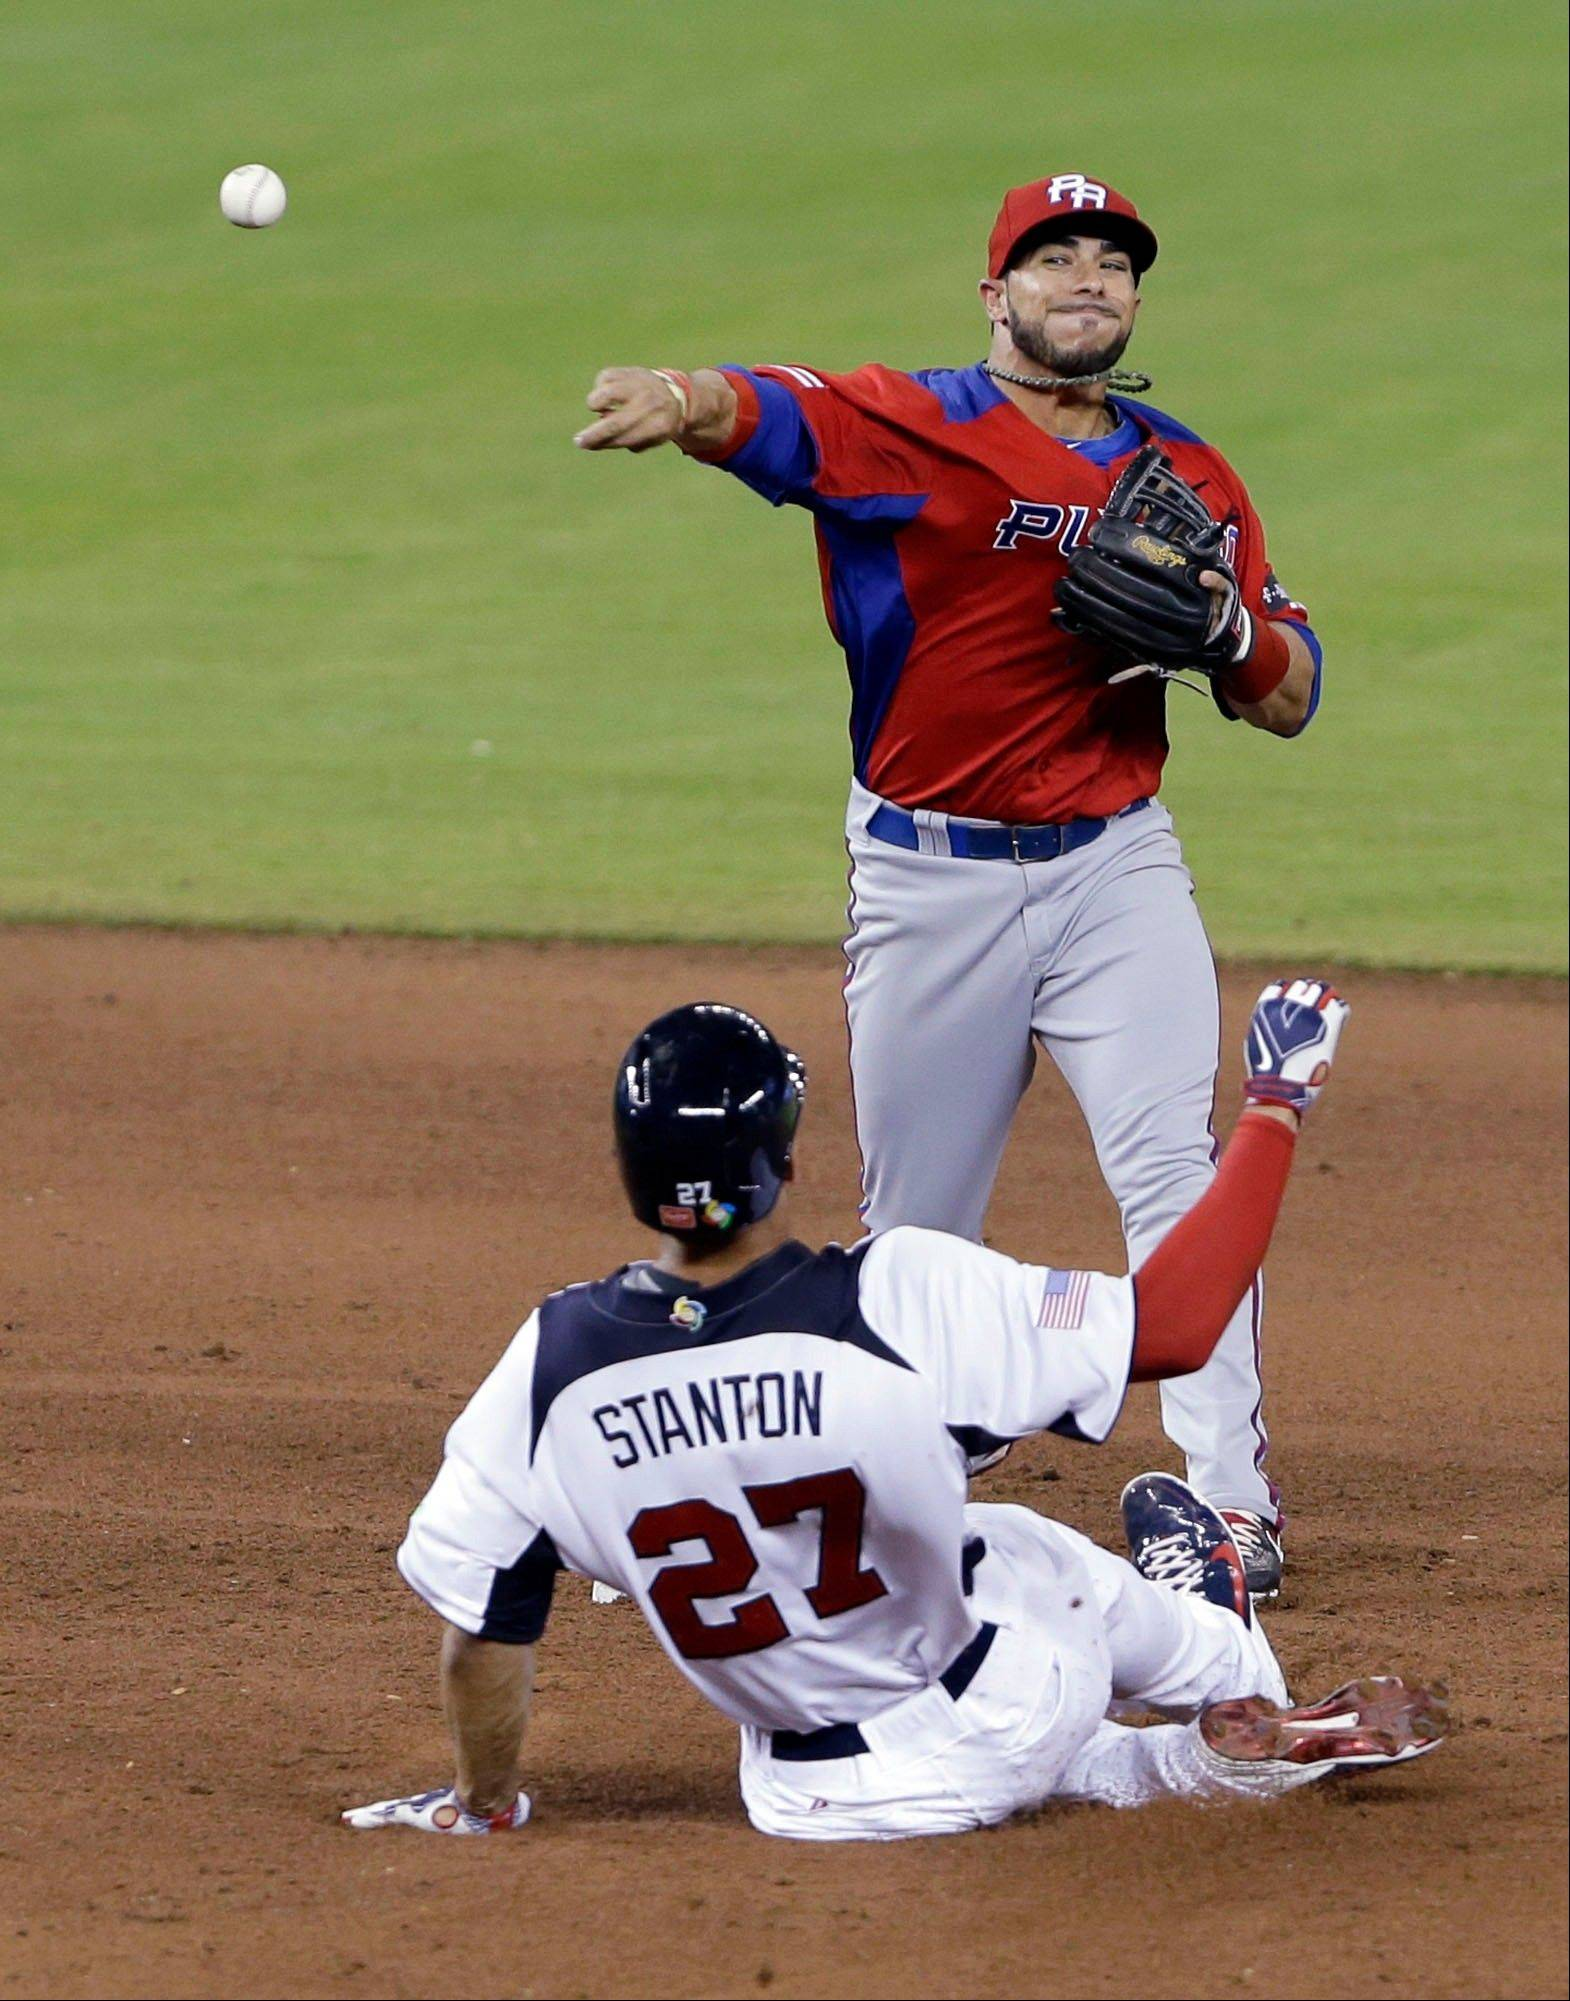 Puerto Rico shortstop Mike Aviles throws to first to attempt a double play as United States' Giancarlo Stanton (27) slides into second during the seventh inning of the second-round elimination game of the World Baseball Classic, Friday, March 15, 2013, in Miami. United States' Ben Zobrist was safe at first and Stanton out at second base and Puerto Rico defeated the U.S. 4-3.